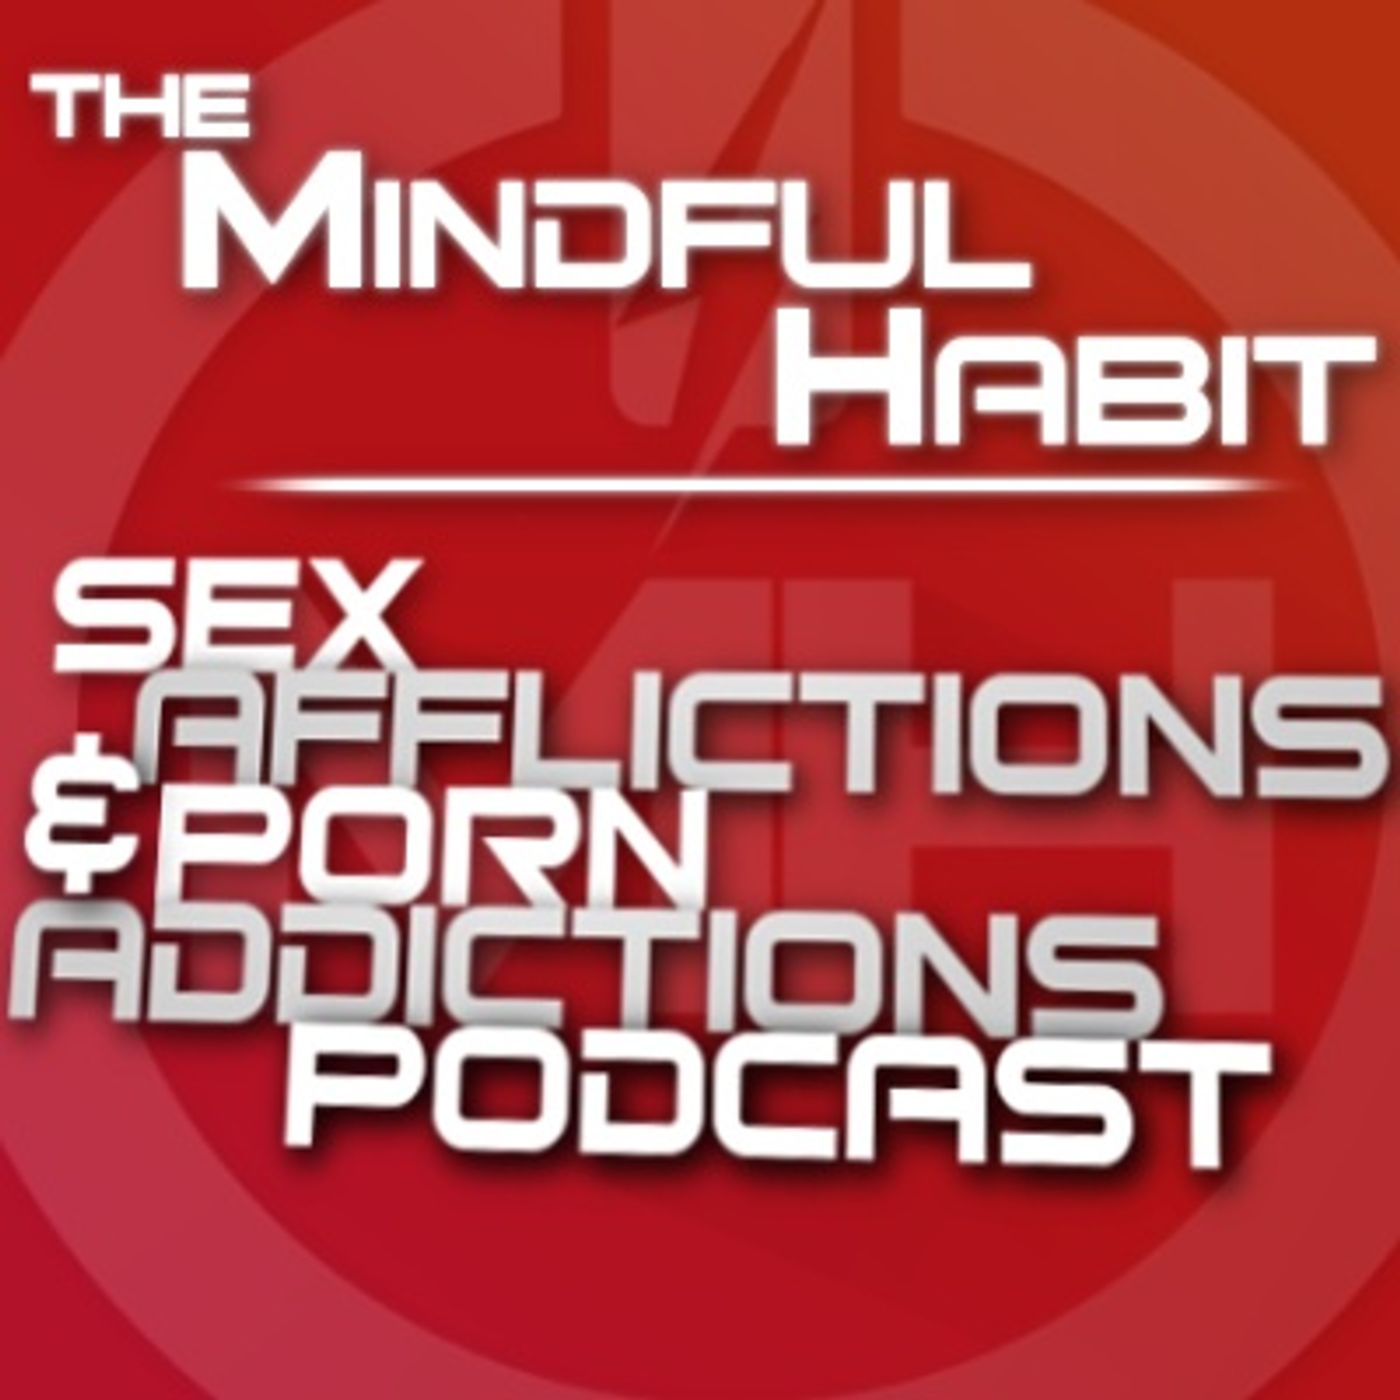 Sex Afflictions & Porn Addictions